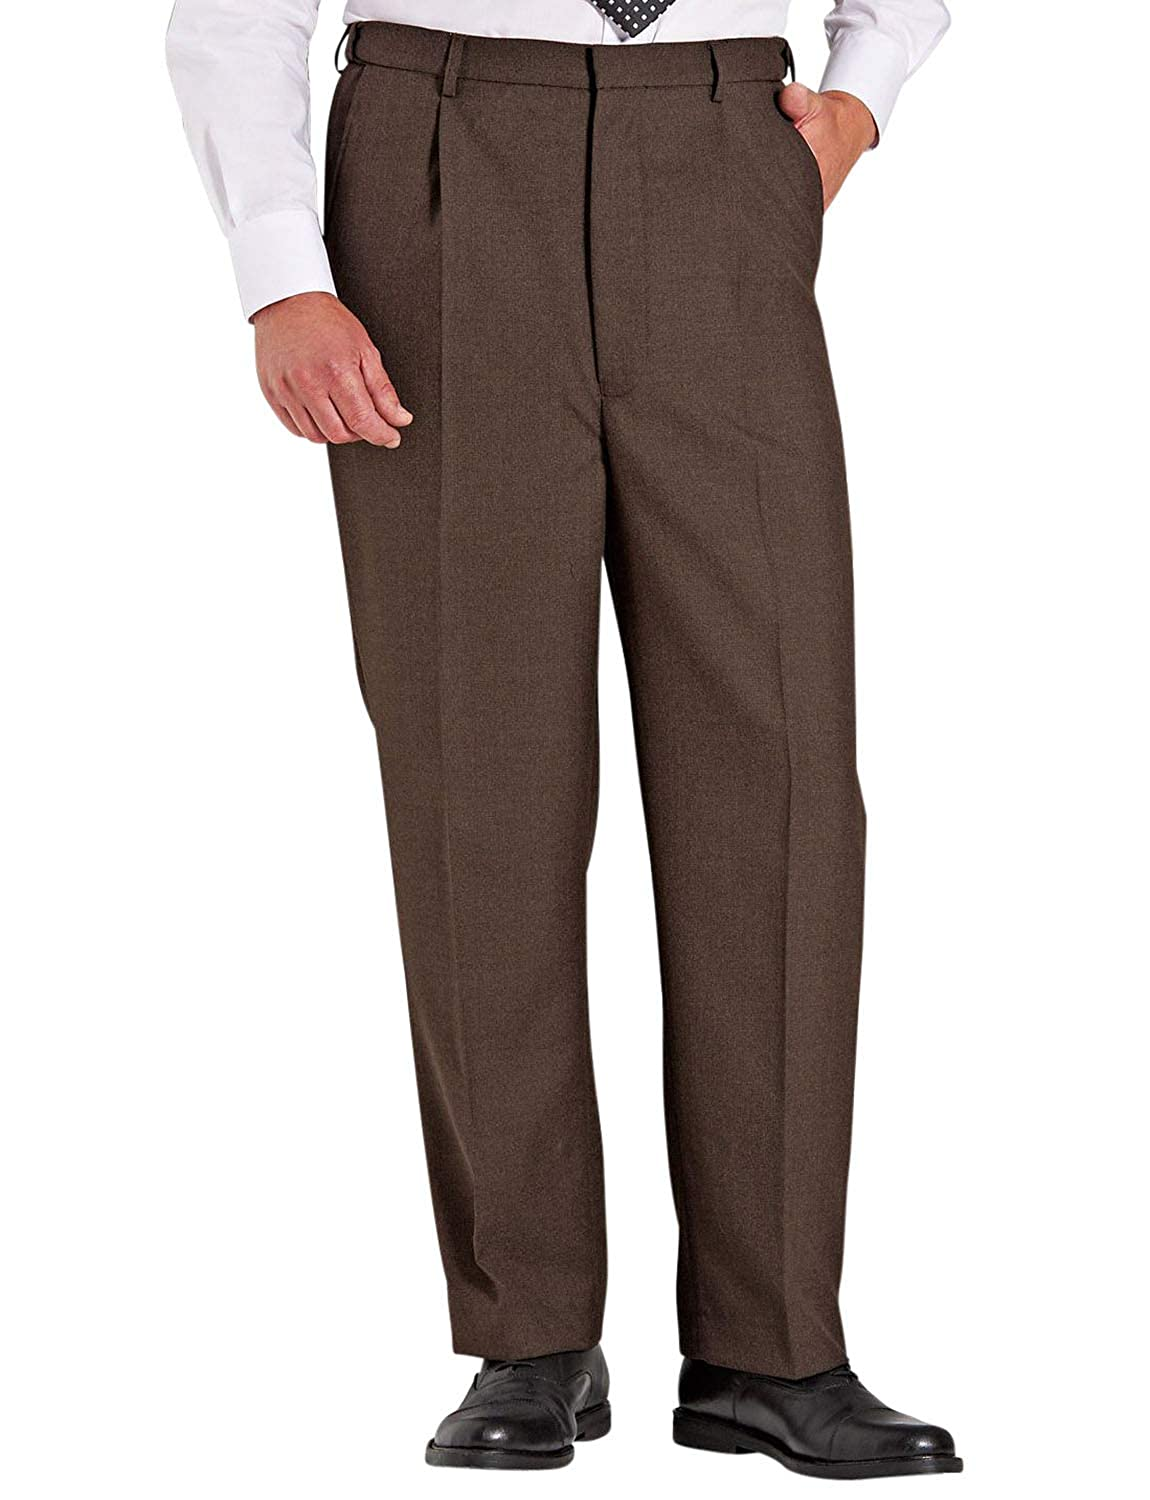 Men's Vintage Christmas Gift Ideas Chums Mens High Waisted Wool Blend Trouser Pants Stretch Waistband $48.79 AT vintagedancer.com